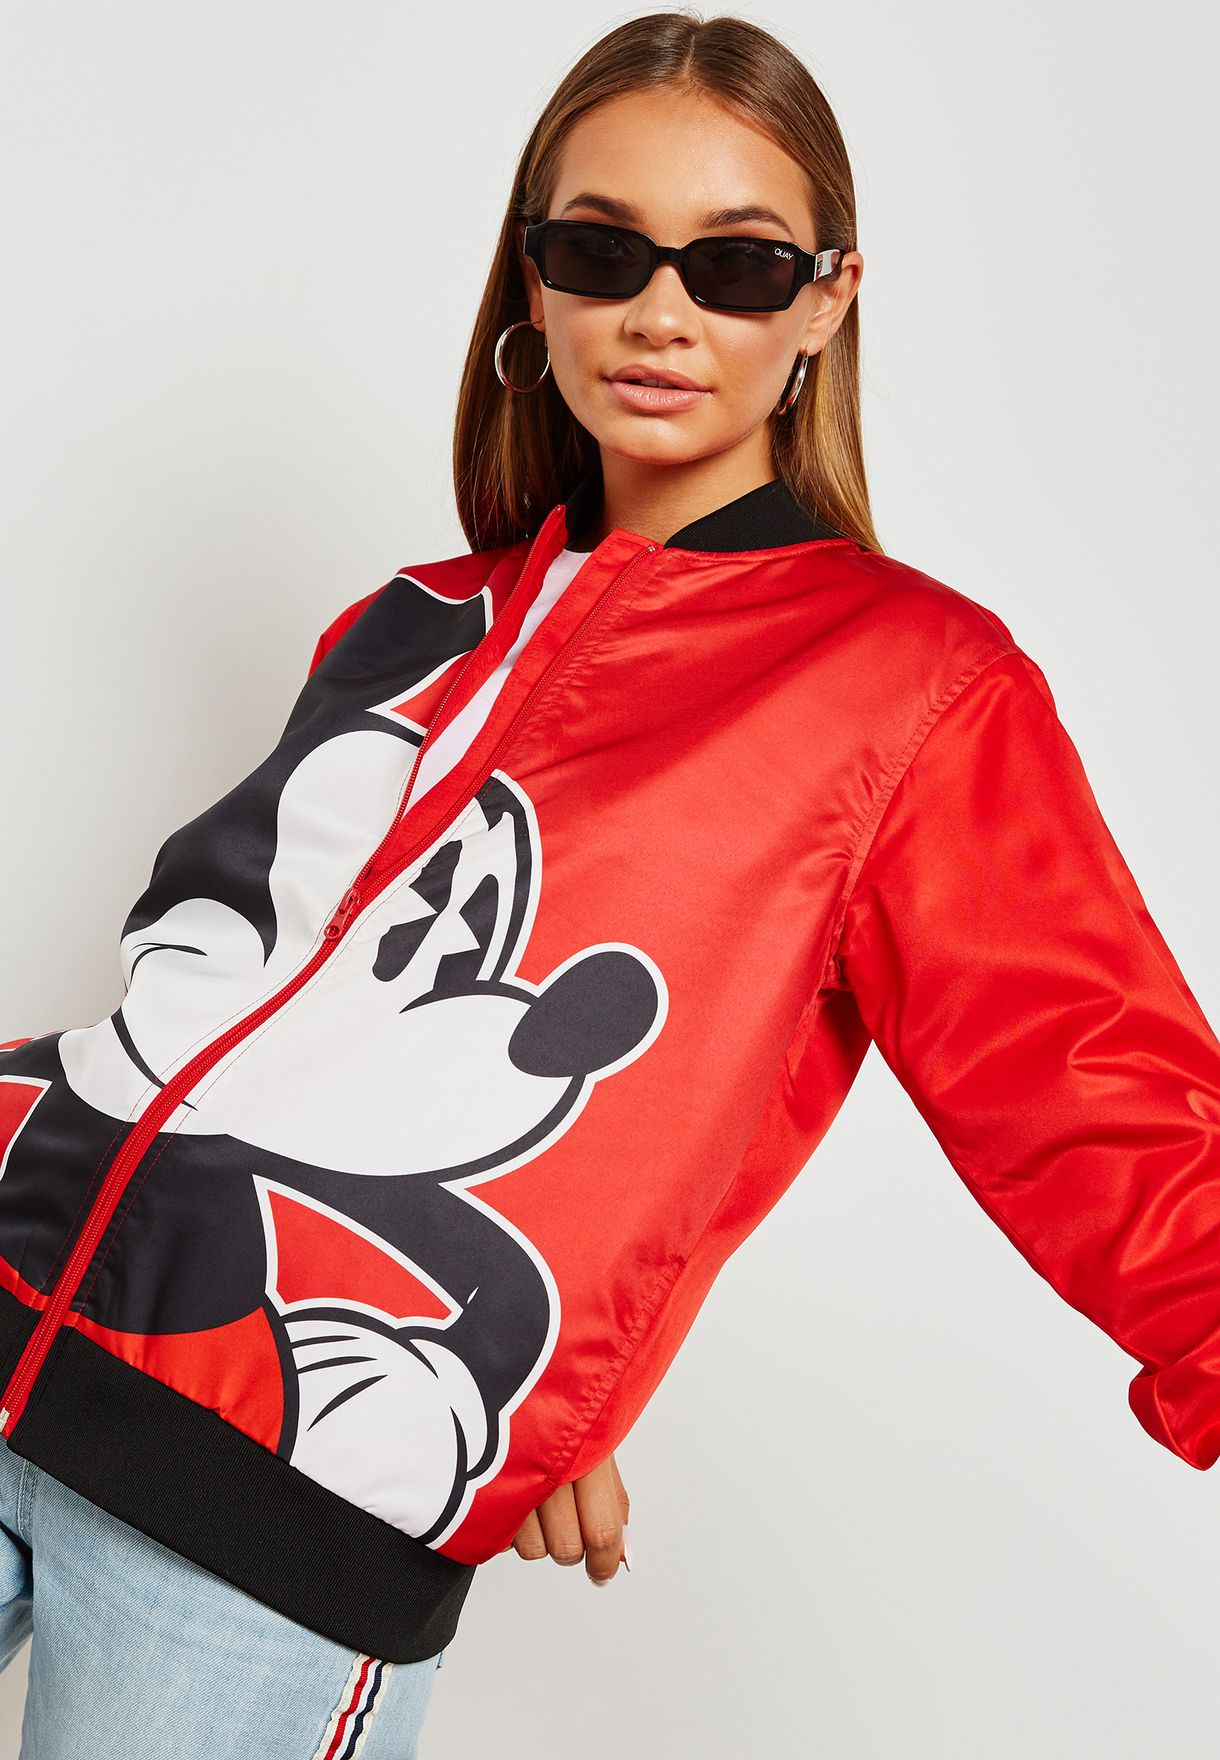 310d6811e3a Shop Forever 21 red Mickey Mouse Print Bomber Jacket 288882 for ...